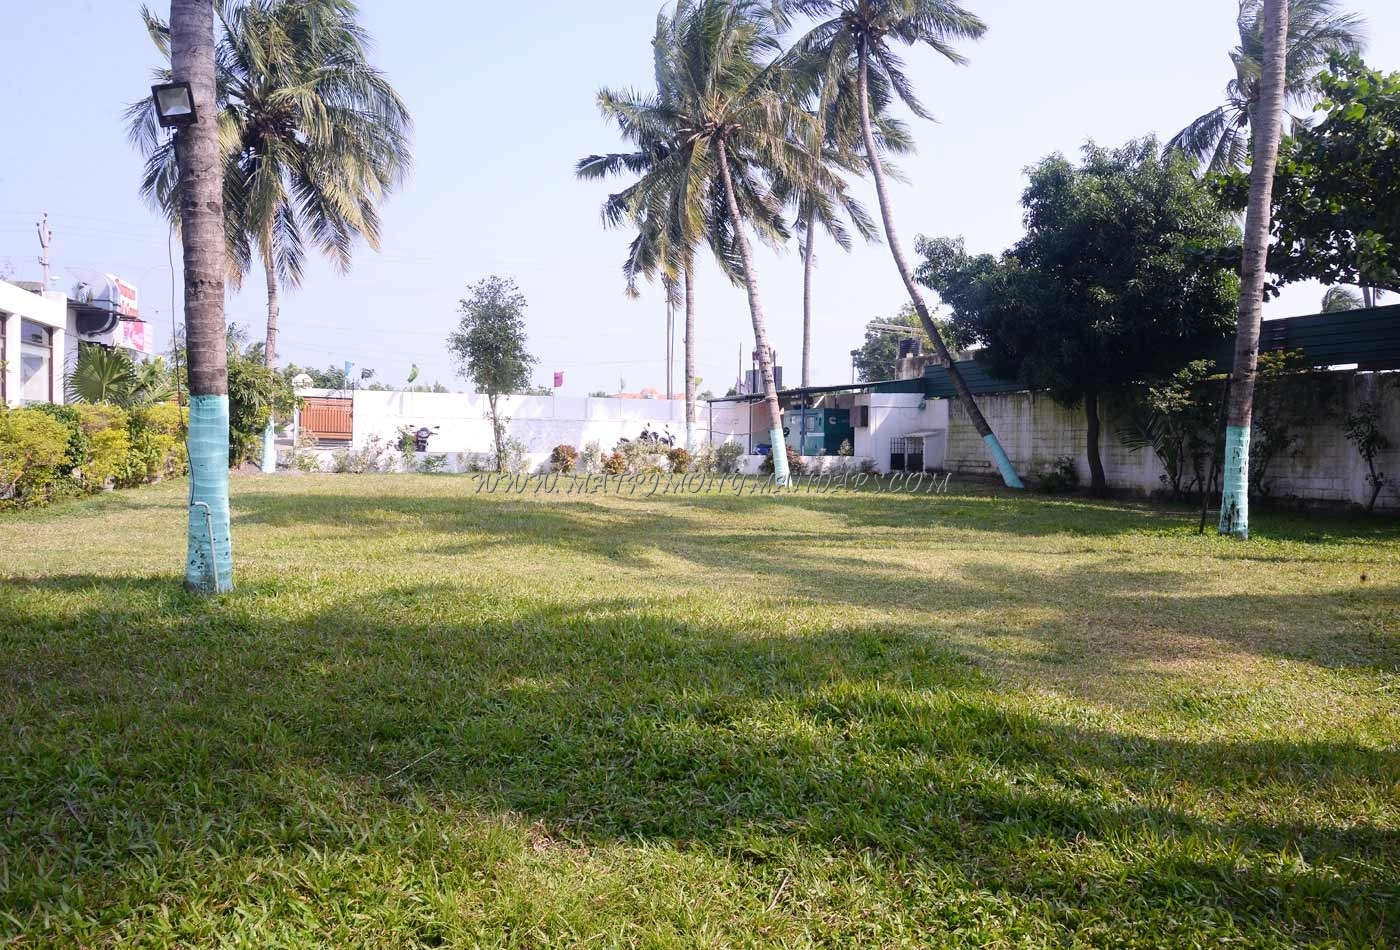 Find the availability of the Meenakshi Holiday Resort (A/C) in ECR, Chennai and avail special offers